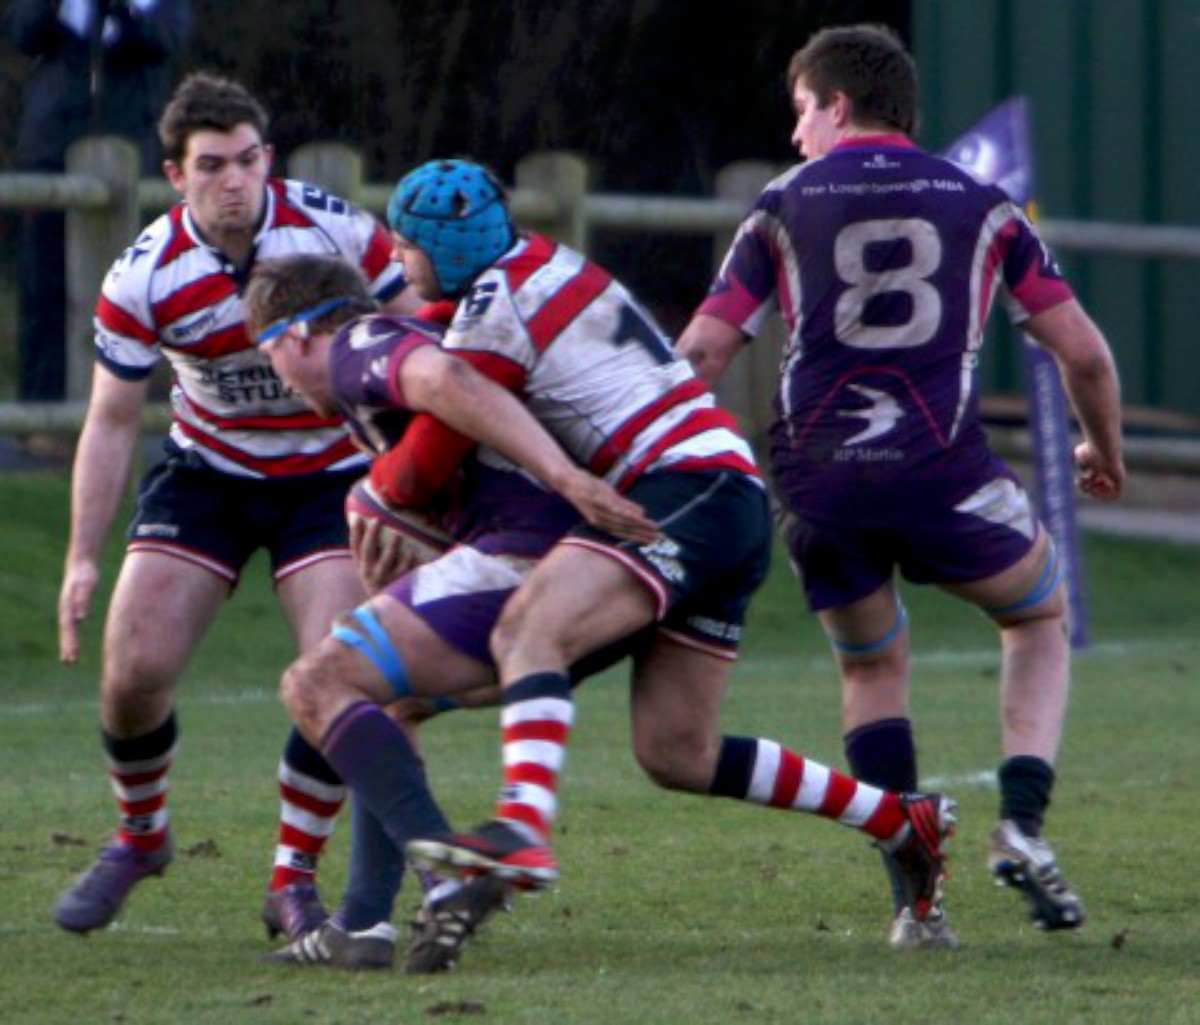 Strong: Park defence halts a Loughborough attack          All pictures: David Whittam